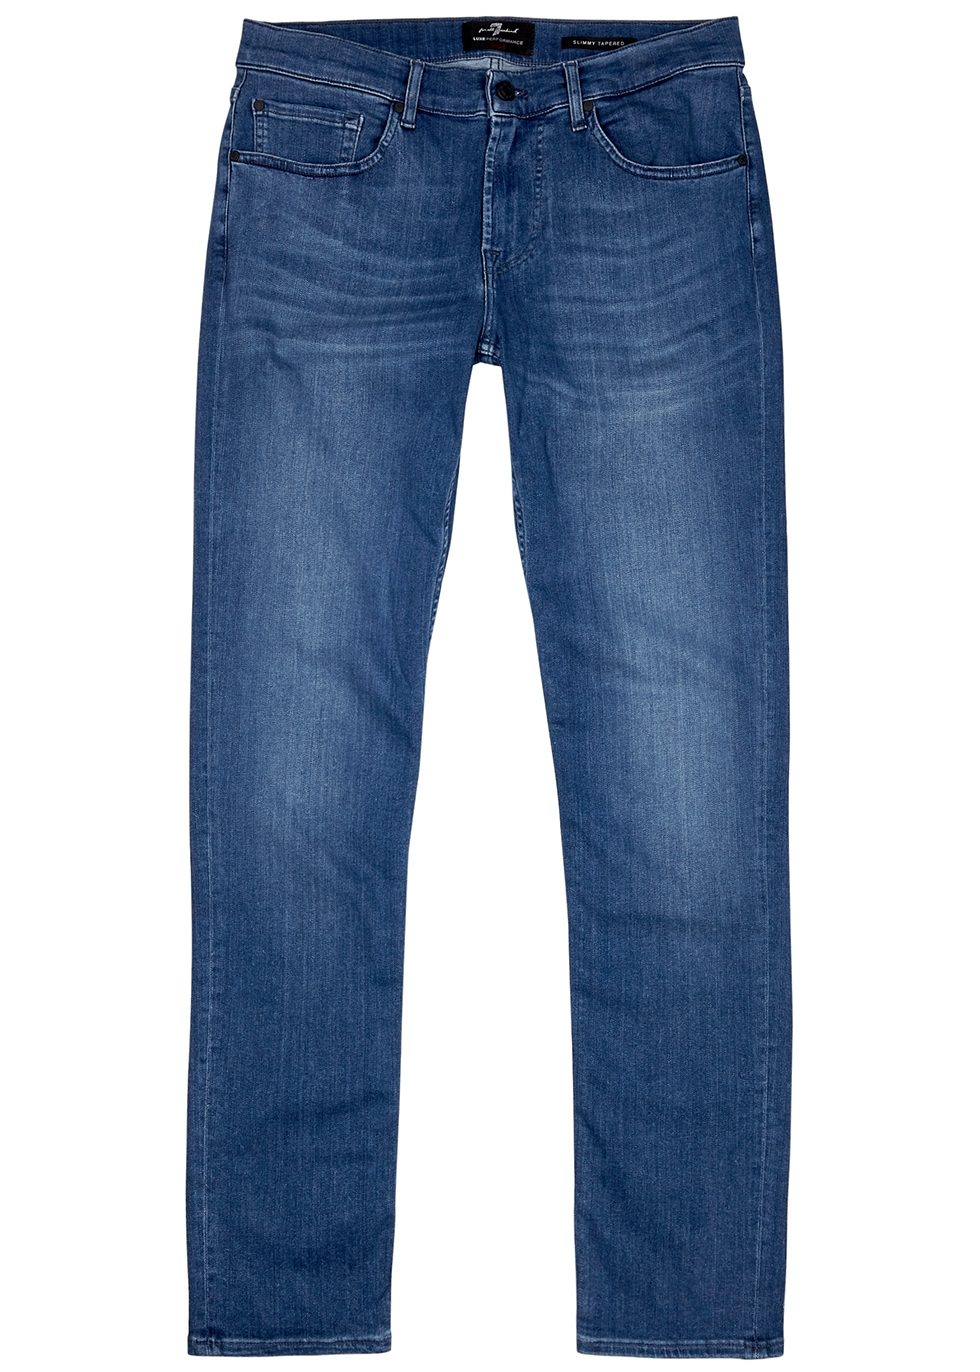 Slimmy Tapered Luxe Performance+ jeans